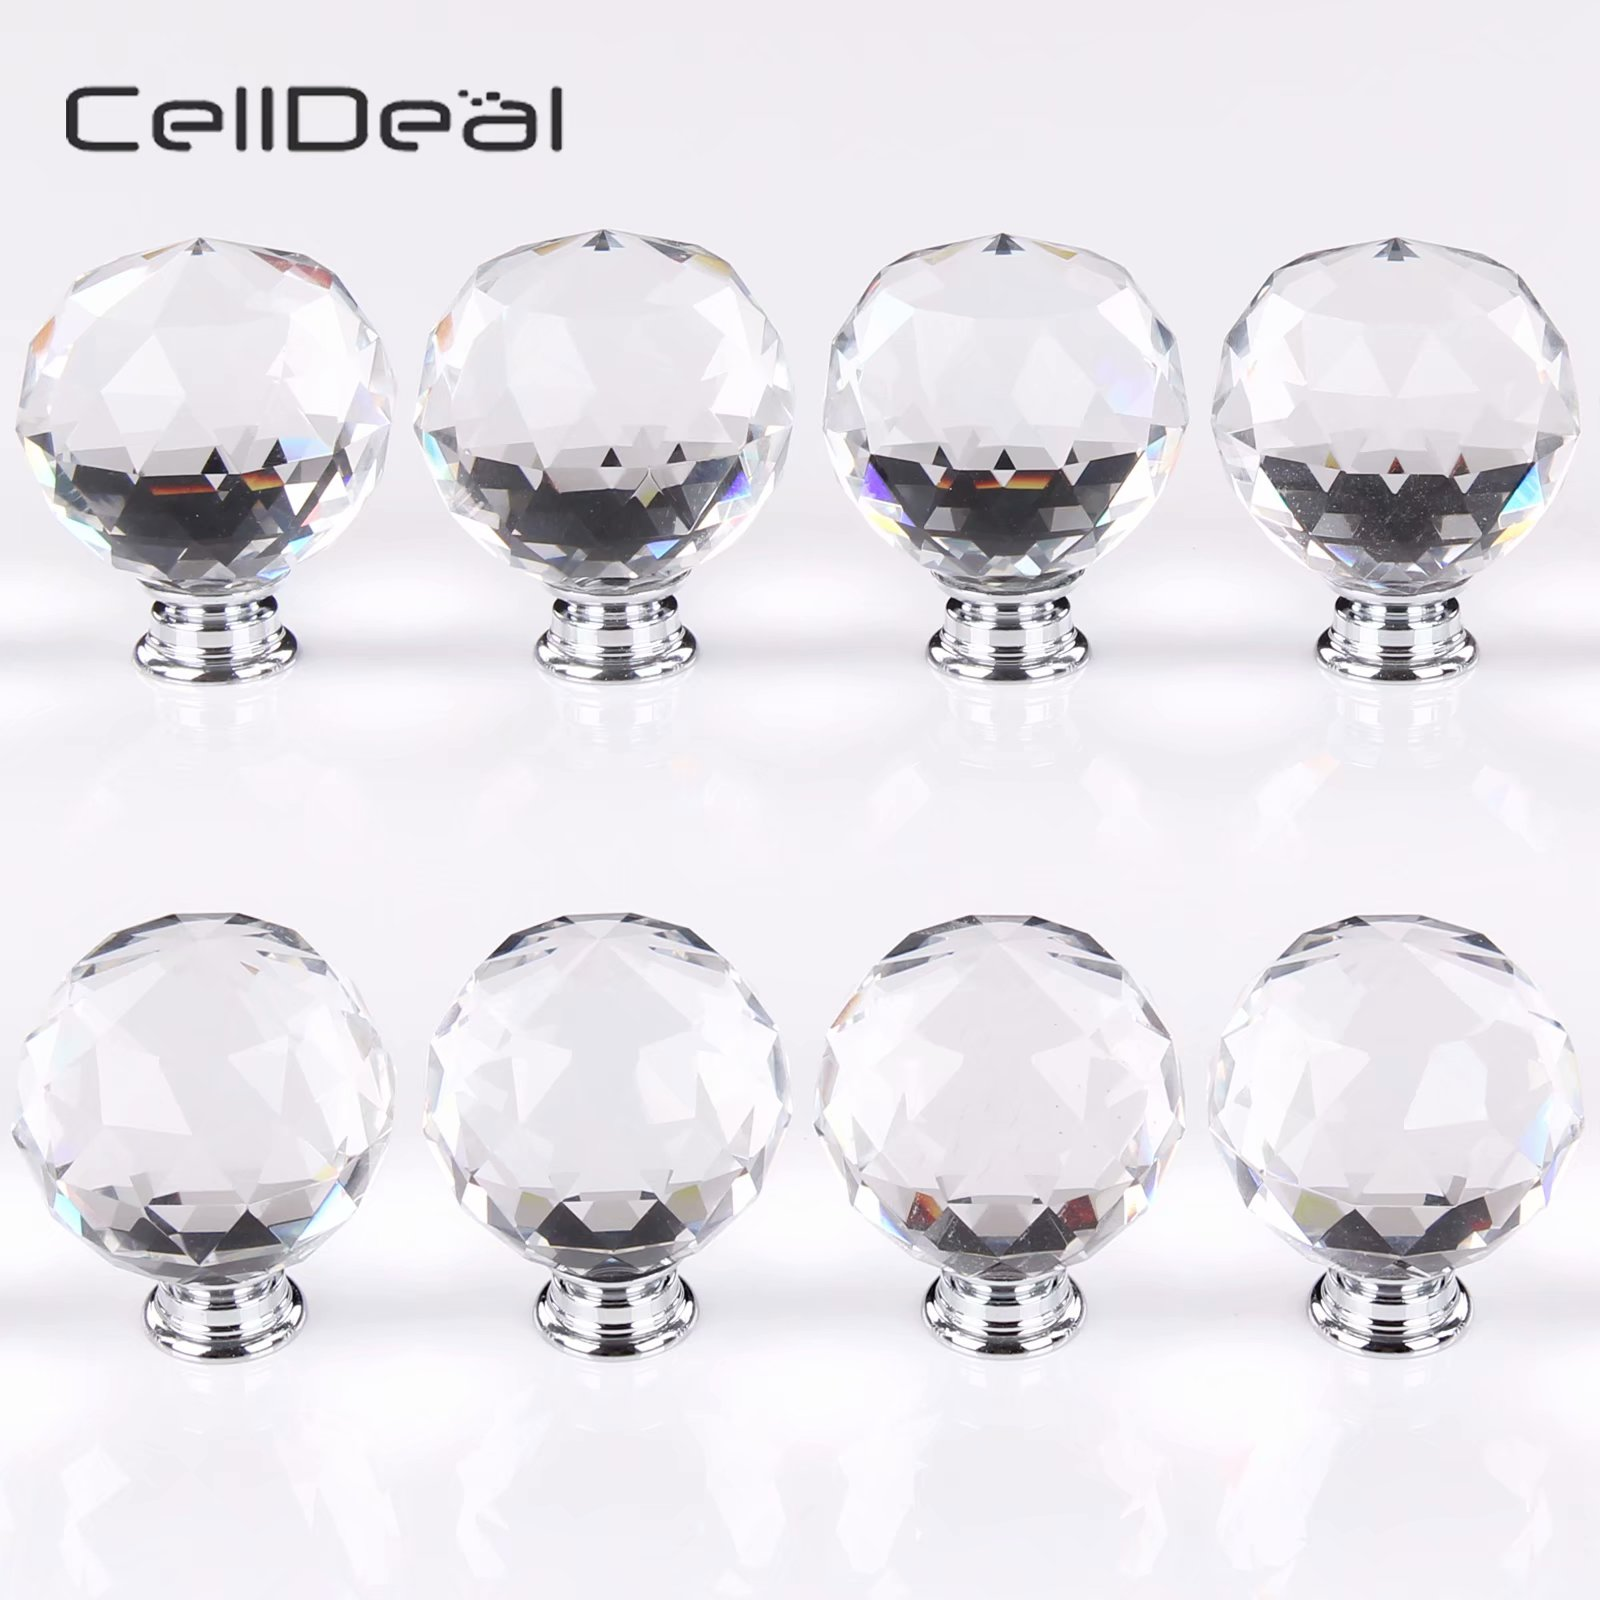 CellDeal 8 x 50mm Crystal Handle Clear Diamond Drawer Furniture Glass Door Knobs Cupboard Cabinet Wardrobe Handles Hardware